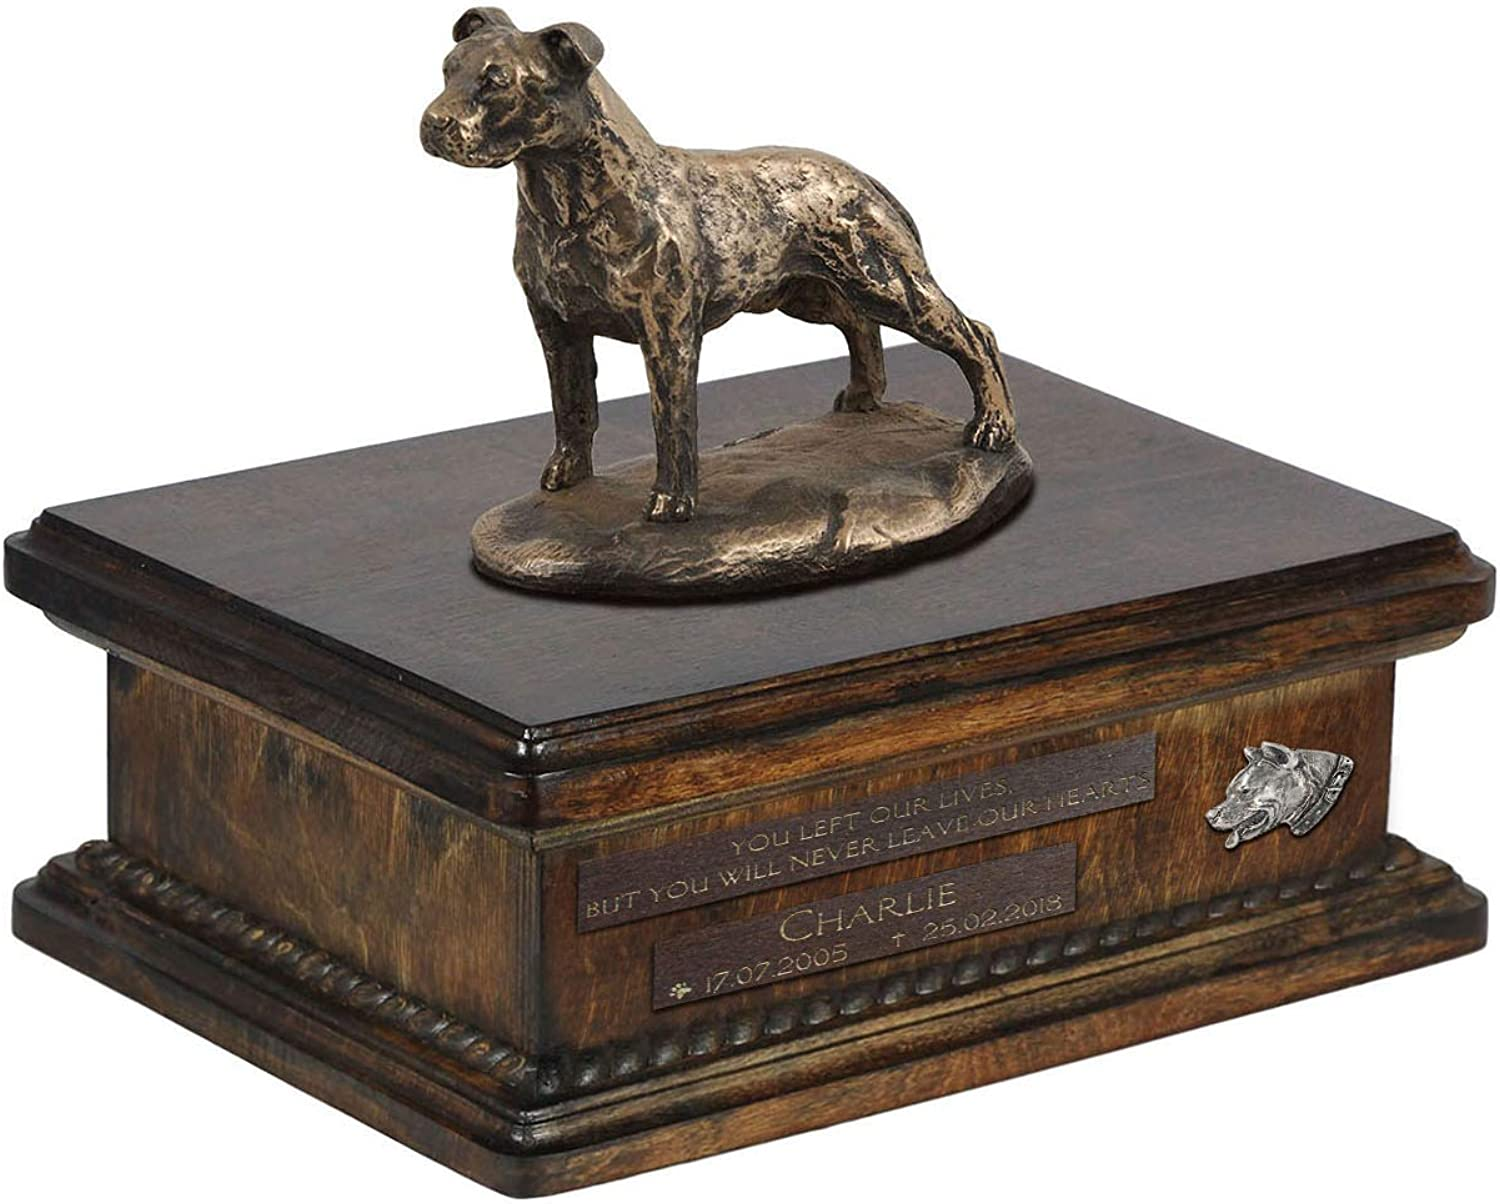 American Staffordshire Terrier uncropped, Urn for Dog Ashes Memorial with Statue, Pet's Name and Quote  ArtDog Personalized